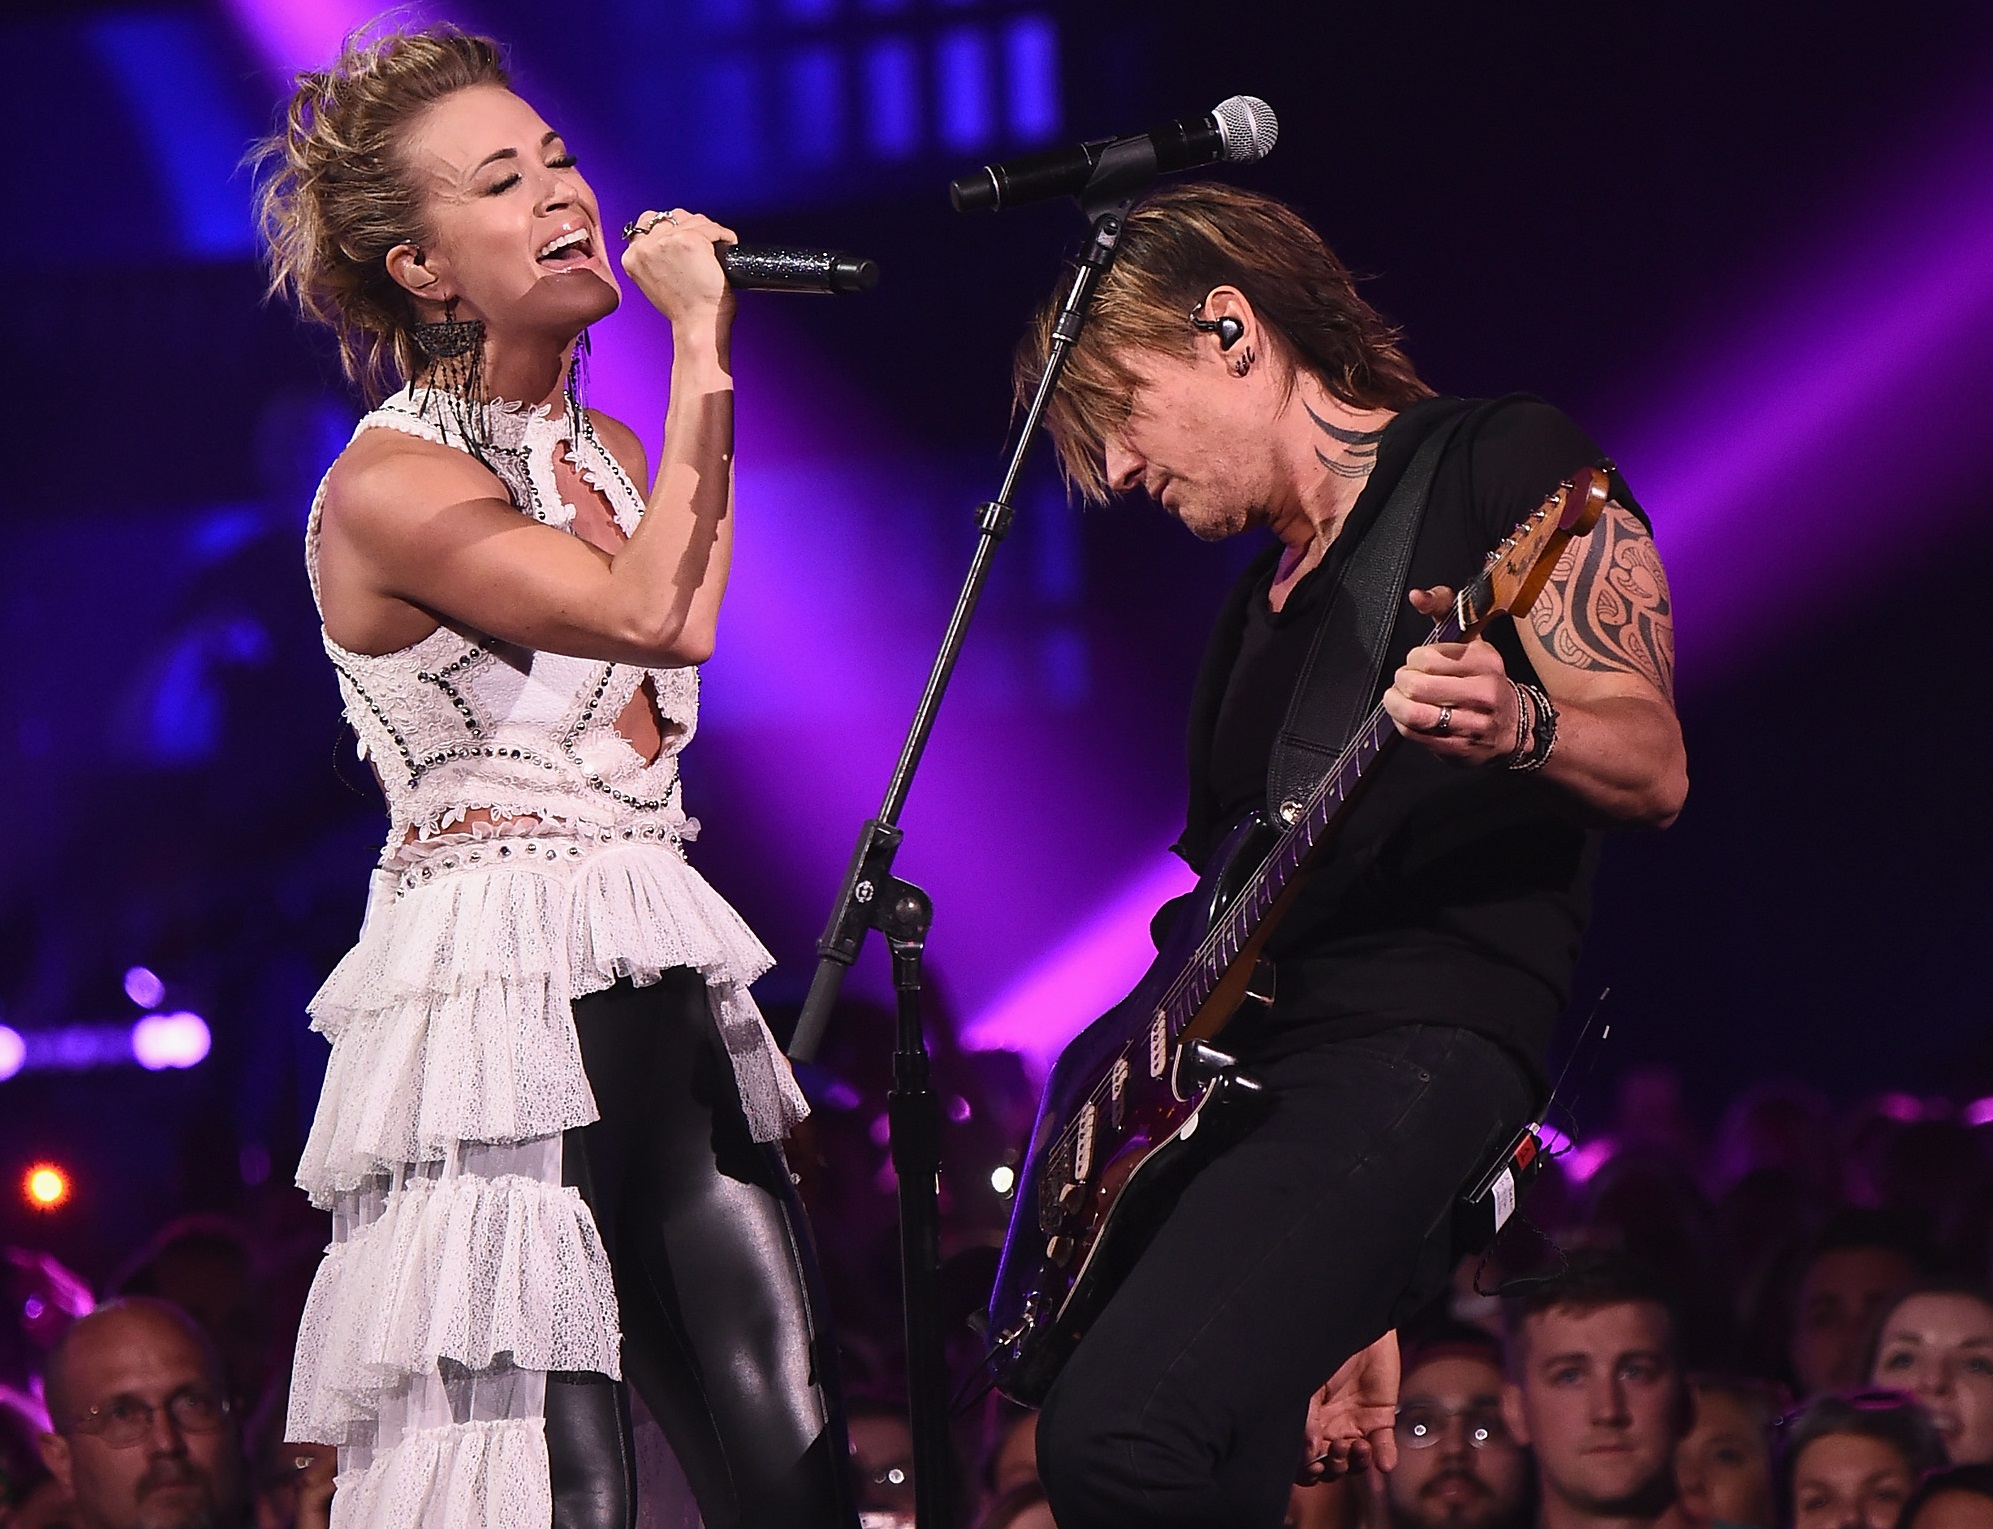 Keith Urban and Carrie Underwood Battle Their Way to No.1 With 'The Fighter'